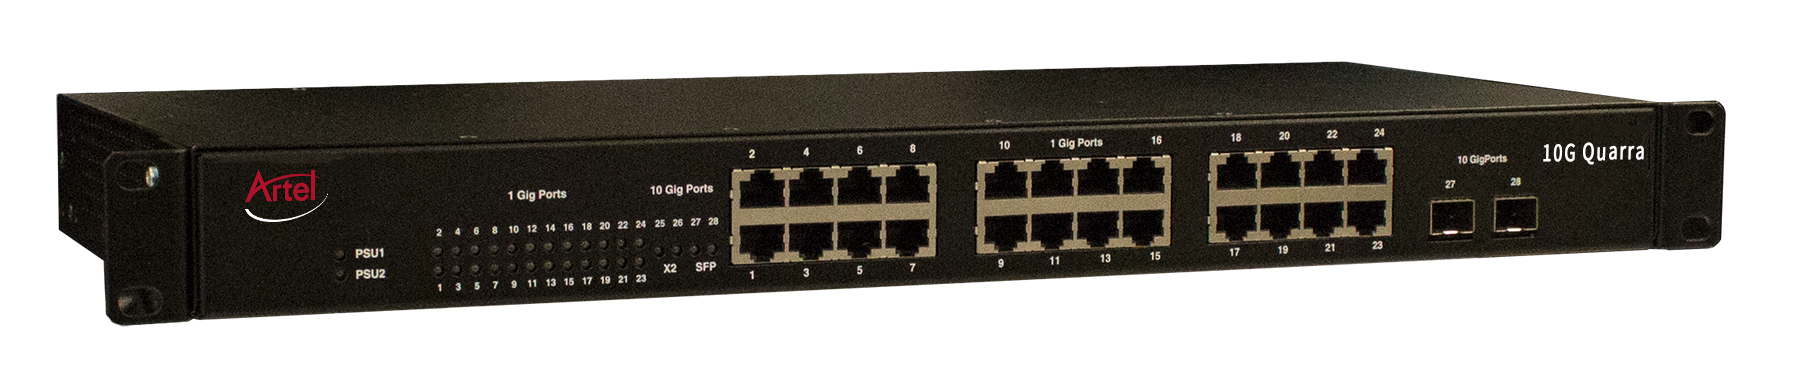 Artel_Video_Systems-Multimedia_Delivery-Switch-Quarra_10G-PTP-Ethernet-Left